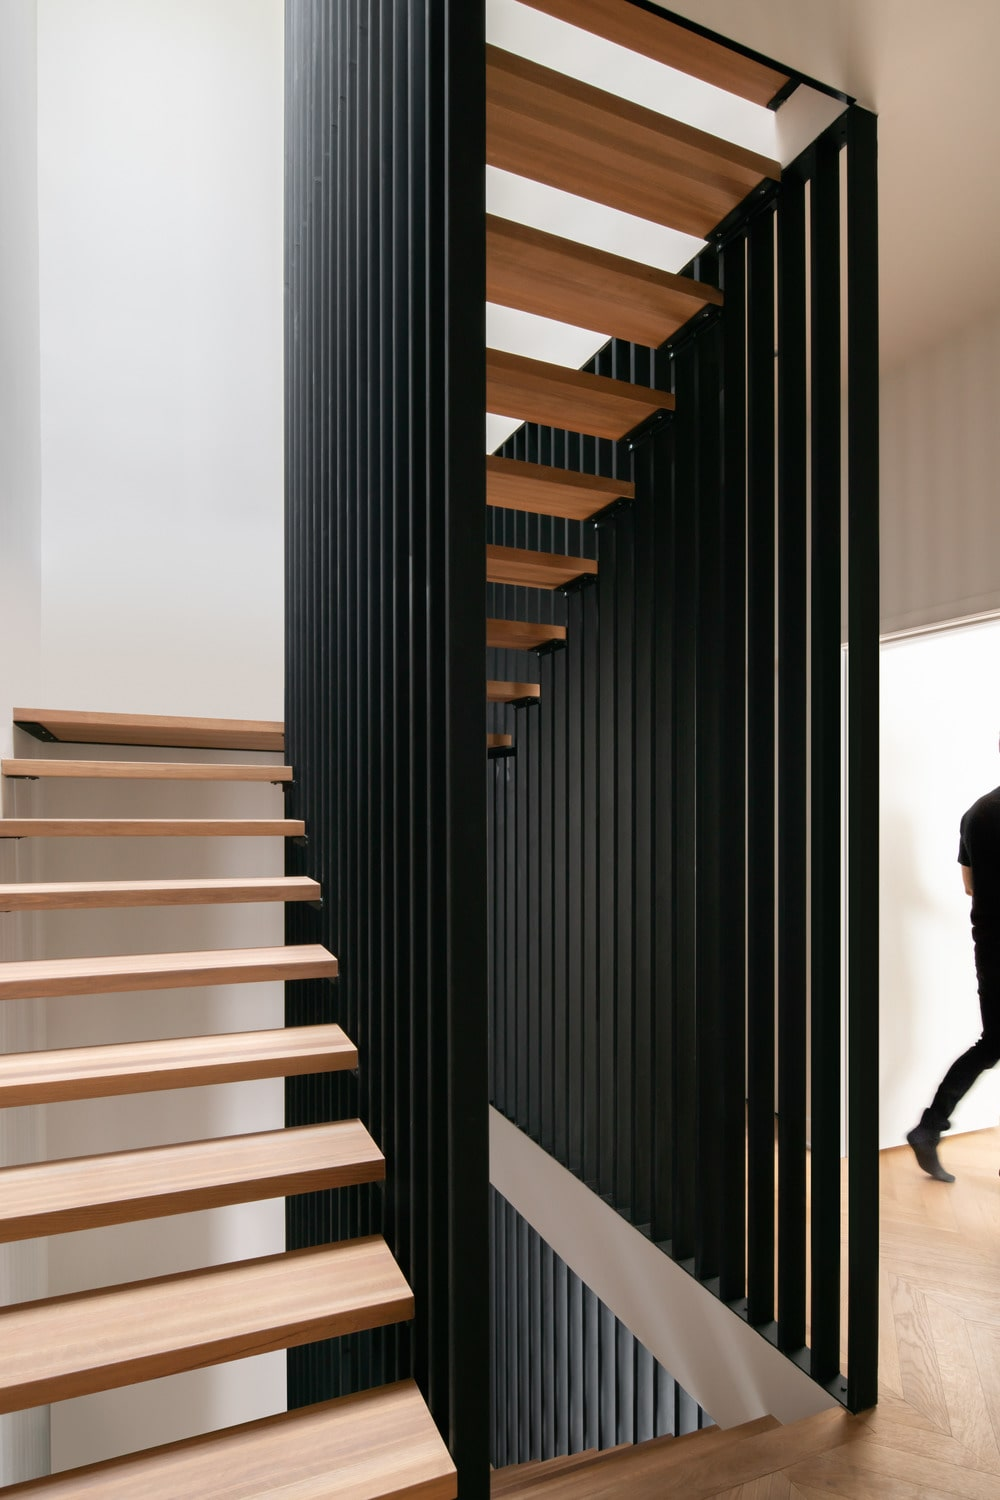 The black structures of the staircase give a nice contrast for the light wooden tone of the steps and hardwood flooring.